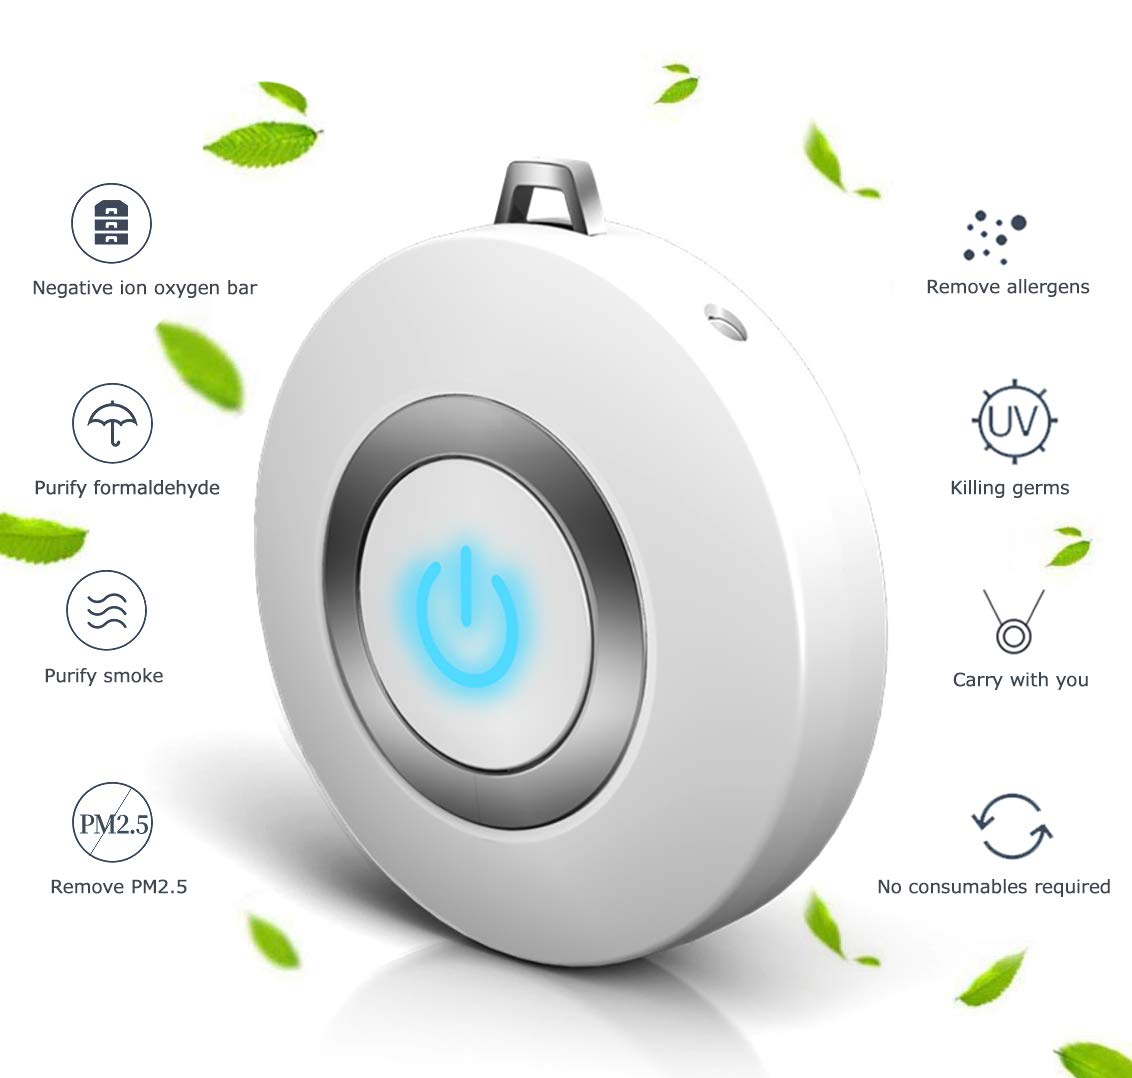 Eva zzy USB Portable Wearable Air Purifier, Personal Mini Air Necklace Negative Ion Air Freshener – No Radiation Low Noise for Adults Kids White